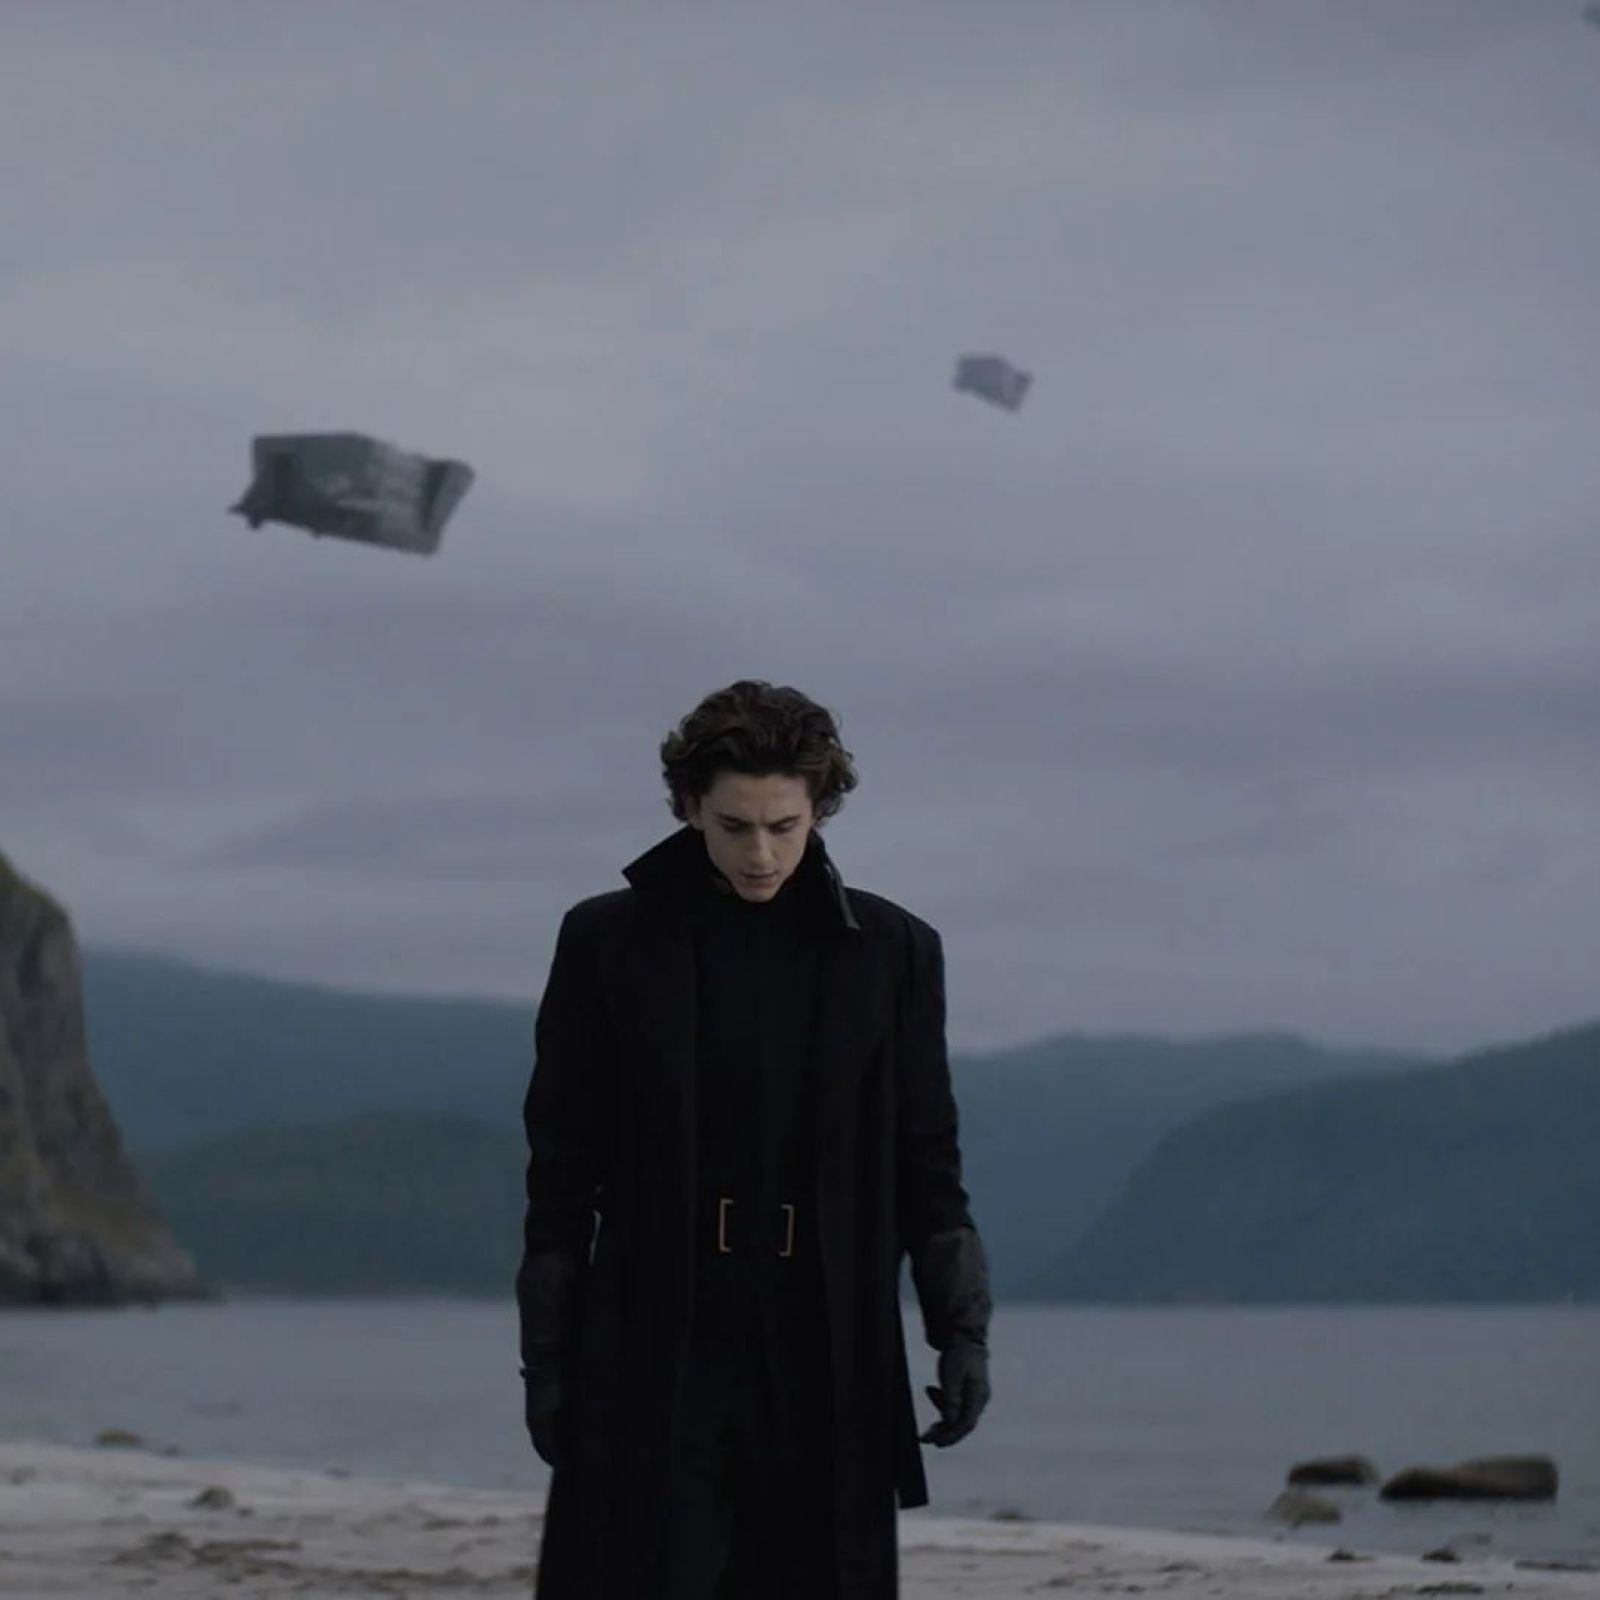 Dune, a Sci-Fi Classic Inspired by the Oregon Coast, Returns to the Cinema